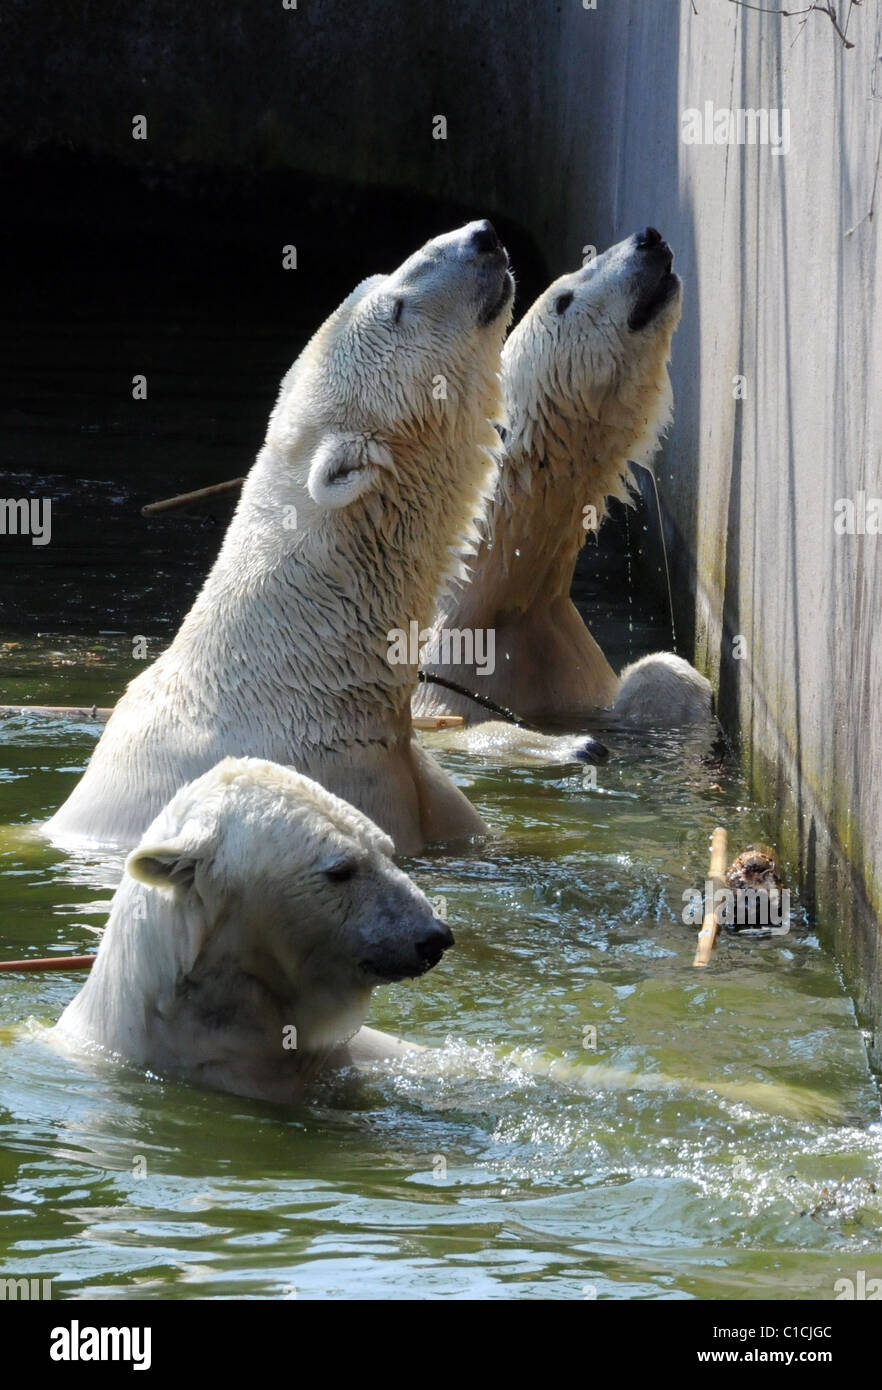 polar bears at their enclosure at berlin zoo after the incident stock photo 35313388 alamy. Black Bedroom Furniture Sets. Home Design Ideas